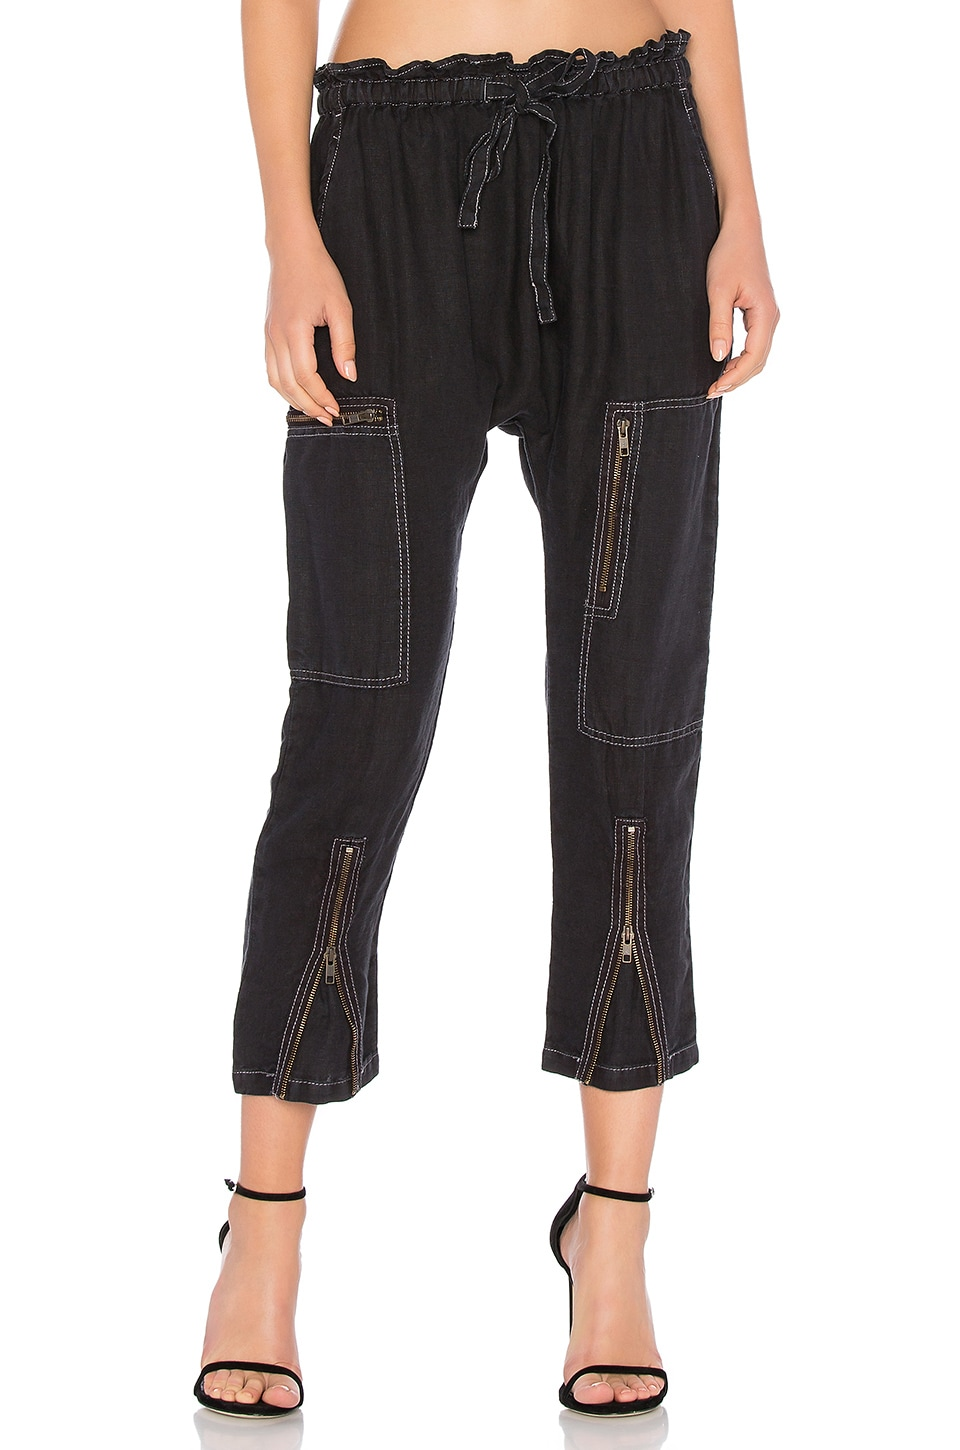 The Aviation Zip Pant by Current/Elliott